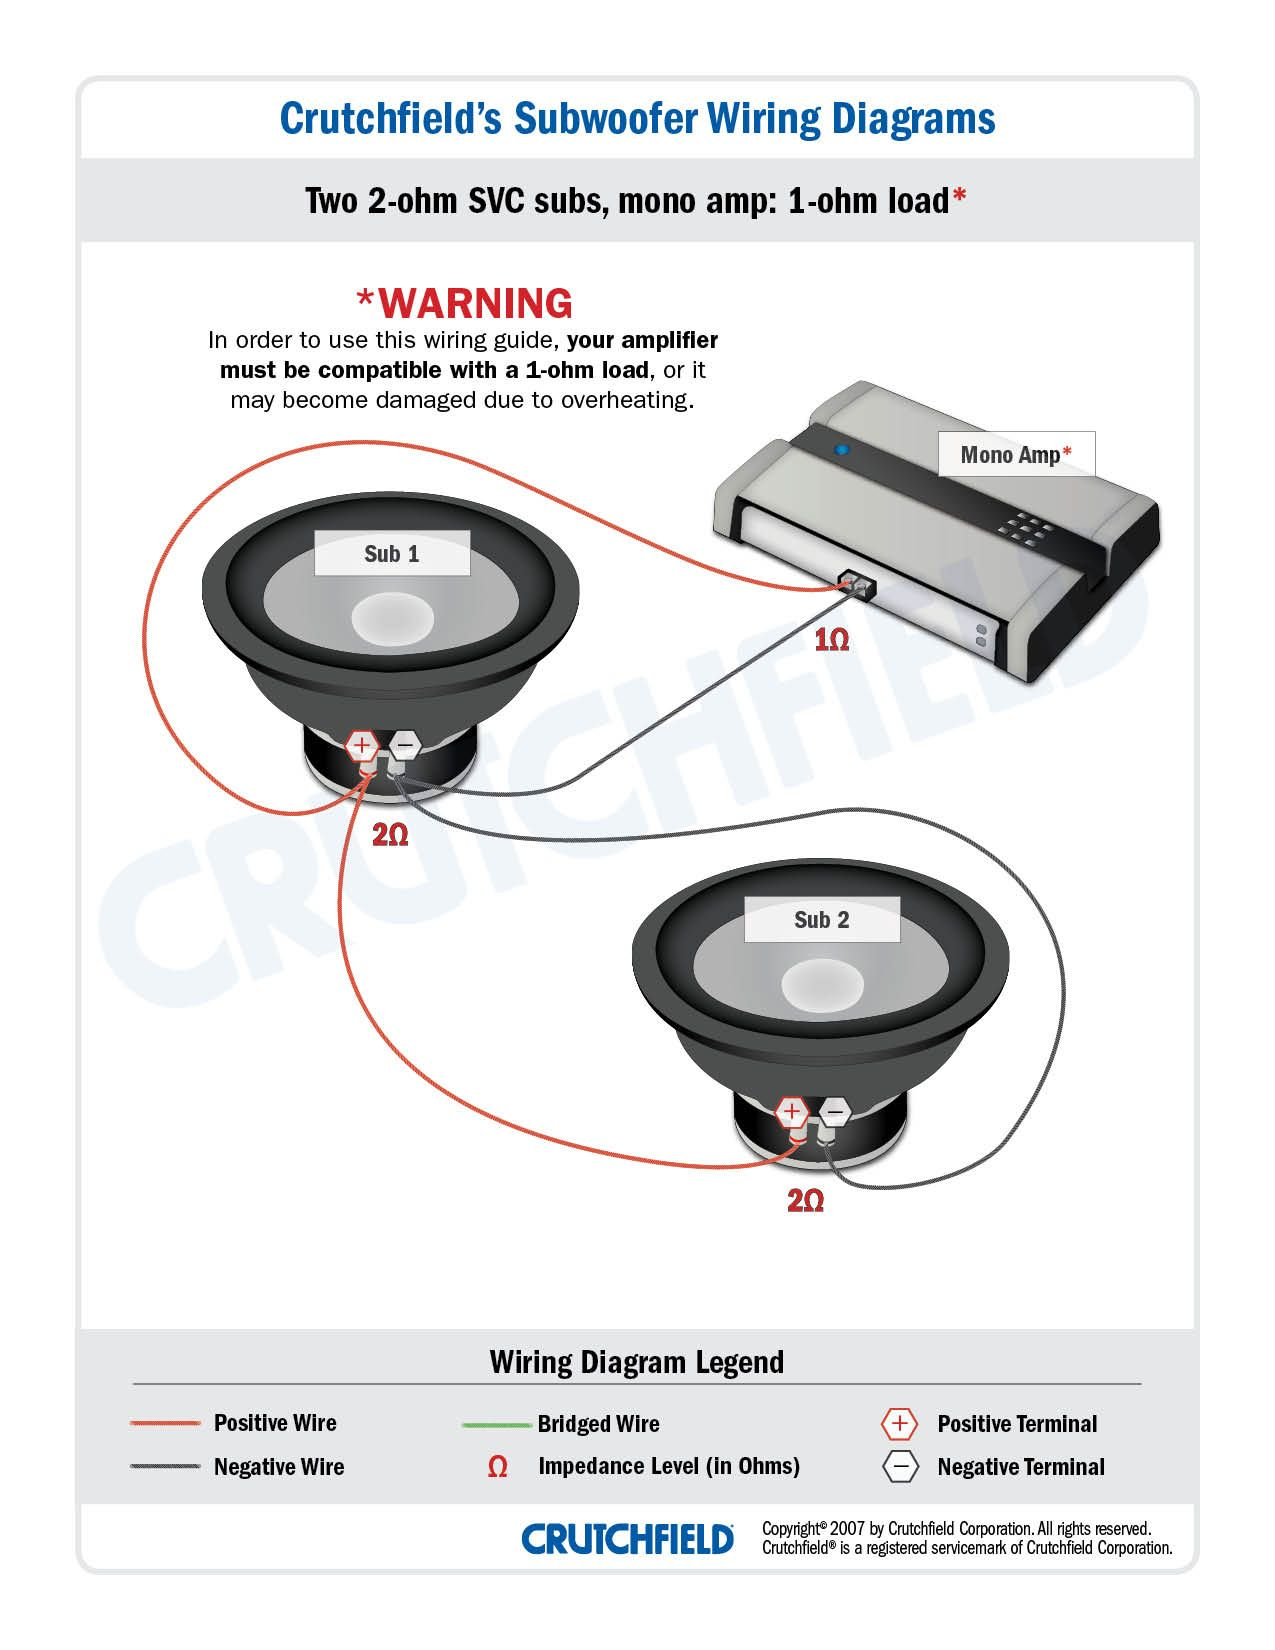 Ohm Dvc Subs Wiring Diagram on 2 ohm subwoofer wiring diagram, dvc 1 ohm wire diagram, dvc subwoofer wiring diagram, crutchfield subwoofer wiring diagram, dual voice coil diagram,